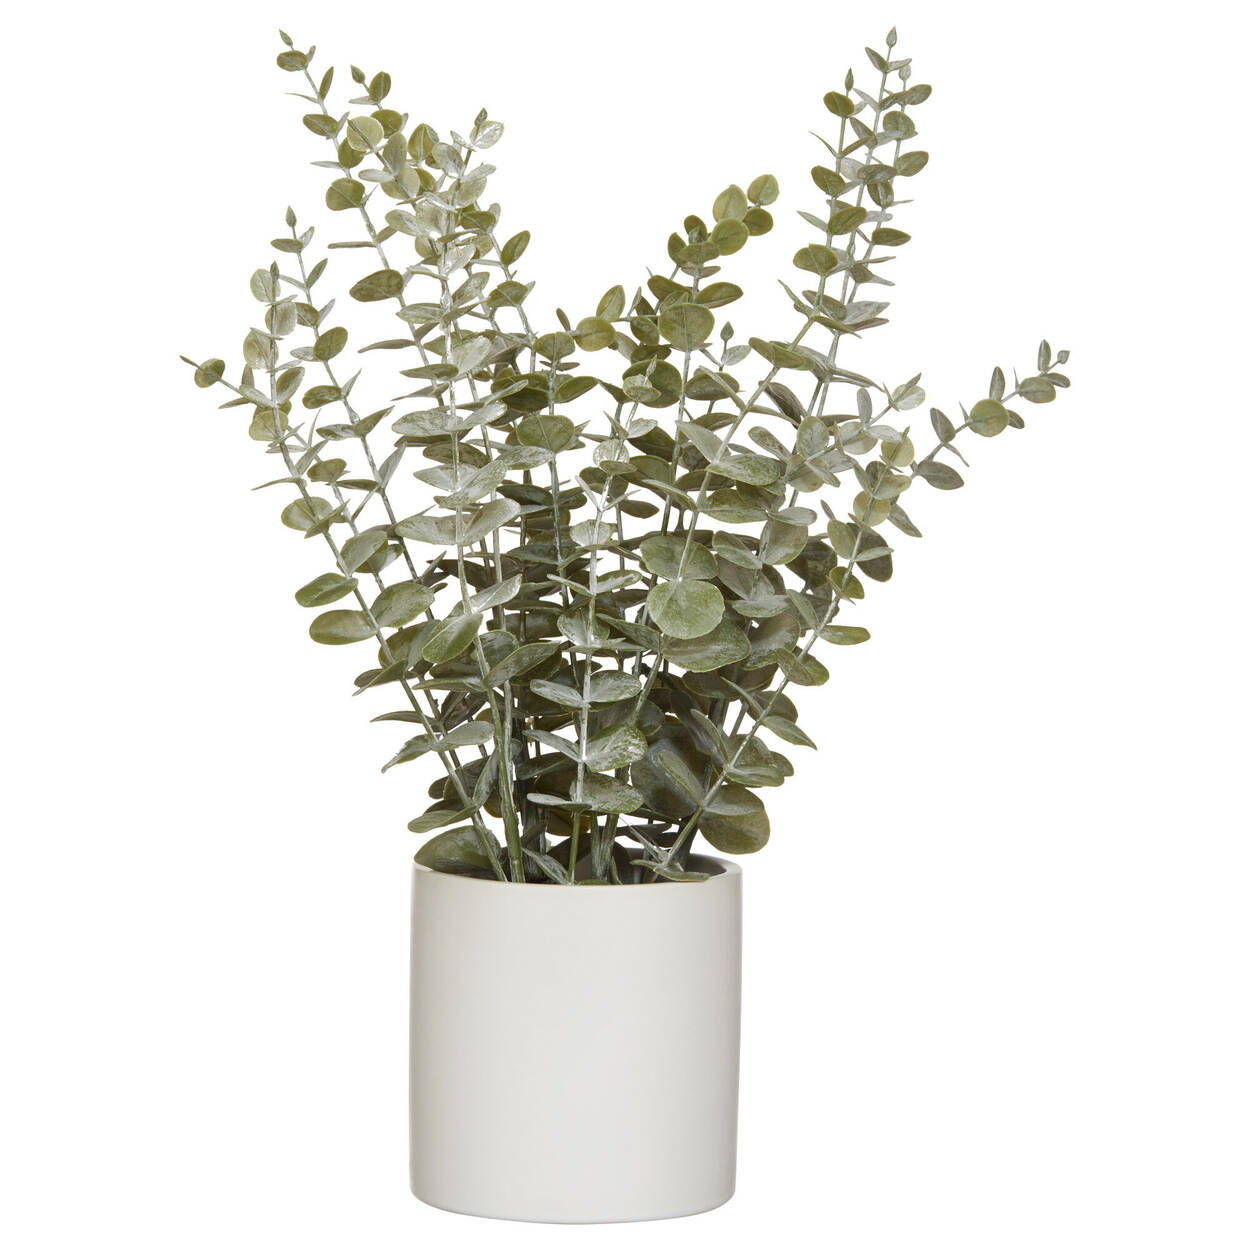 Eucalyptus in Ceramic Pot